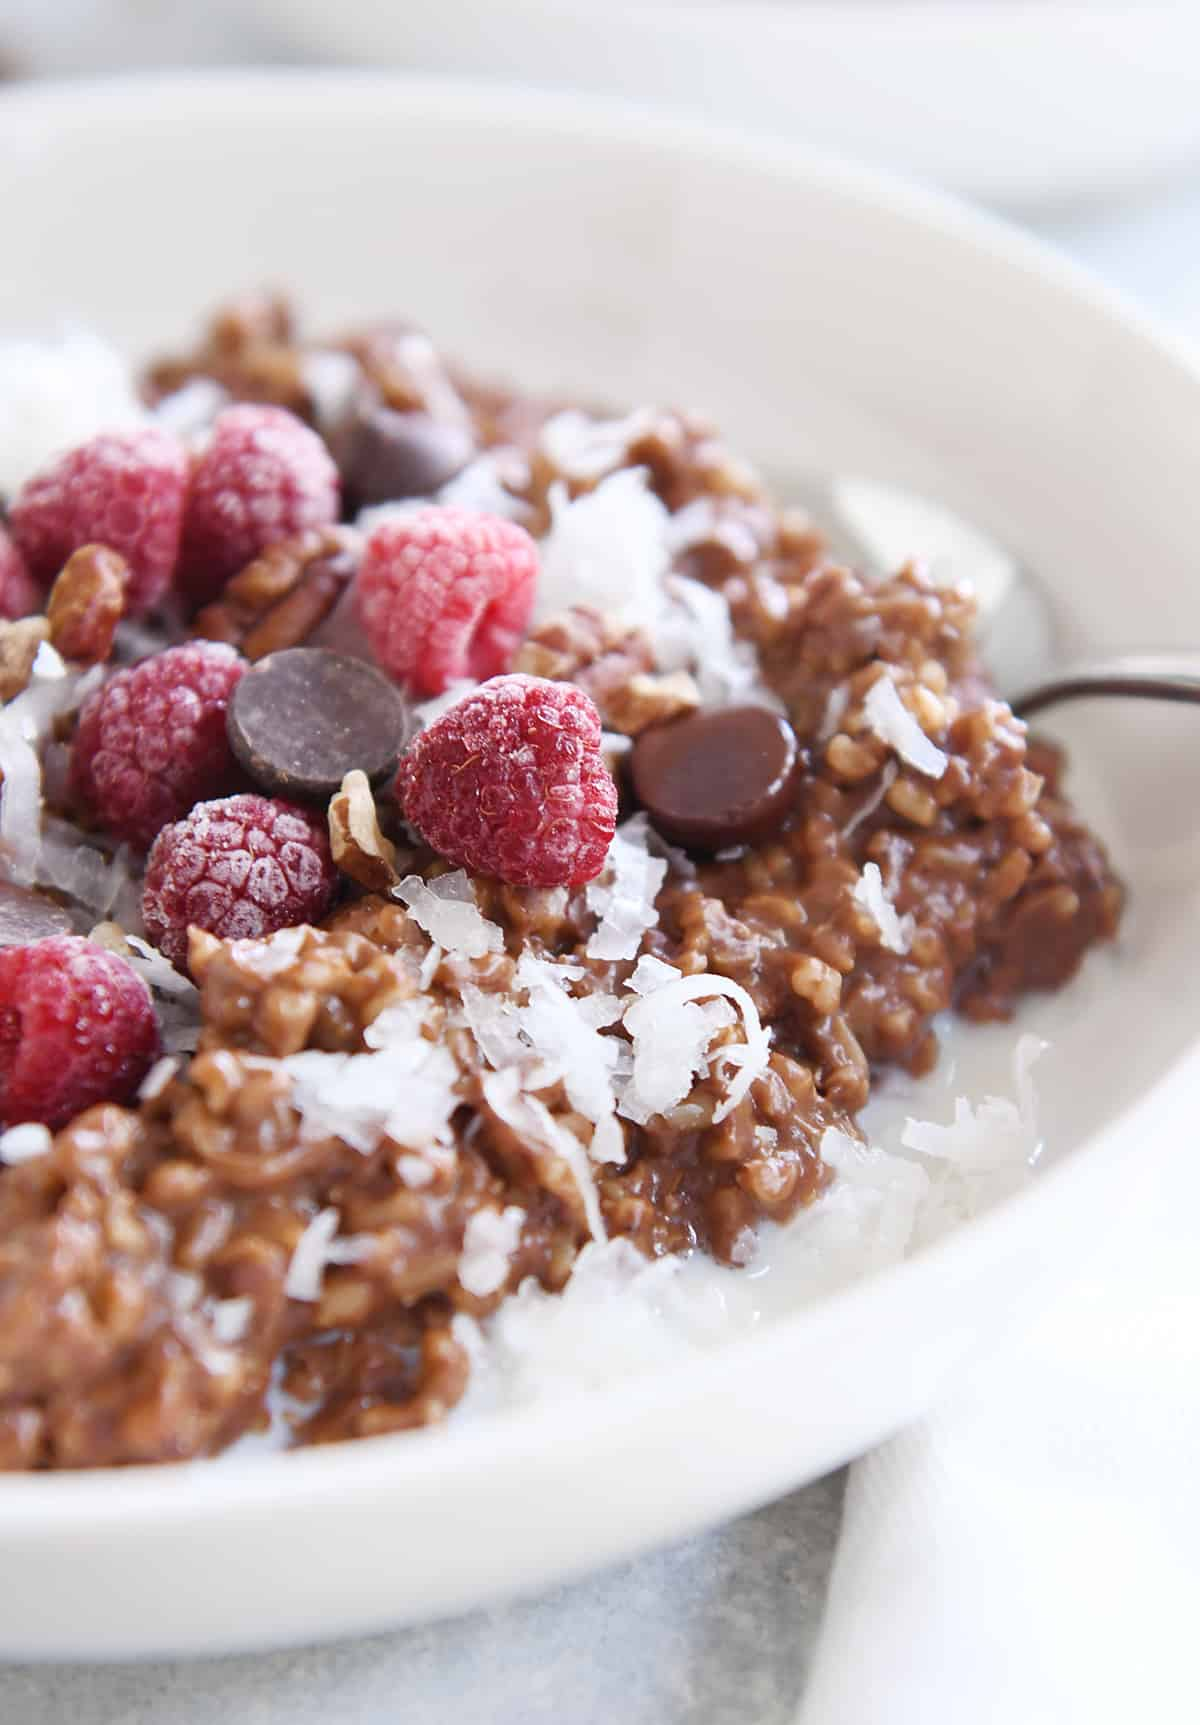 instant pot chocolate steel cut oats in white bowl with chocolate chips and frozen raspberries